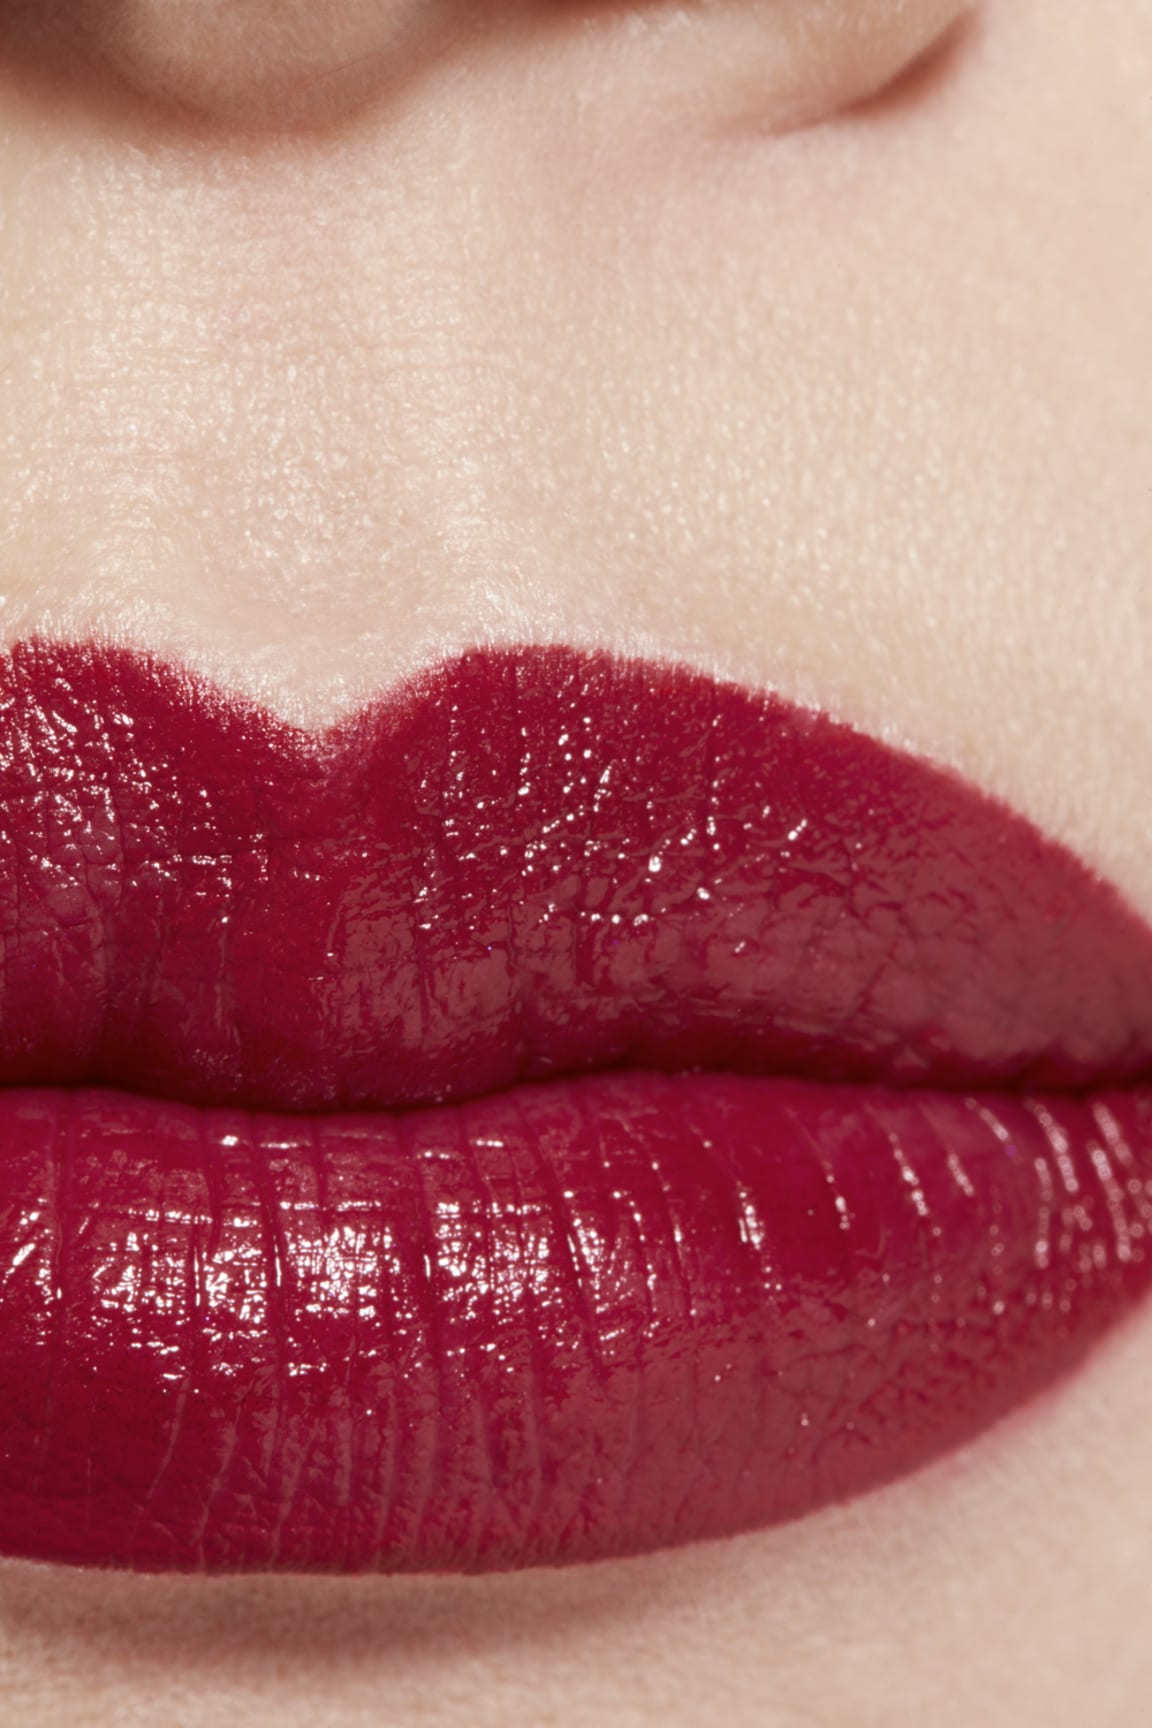 Application makeup visual 1 - ROUGE ALLURE 847 - ROUGE MAJESTUEUX